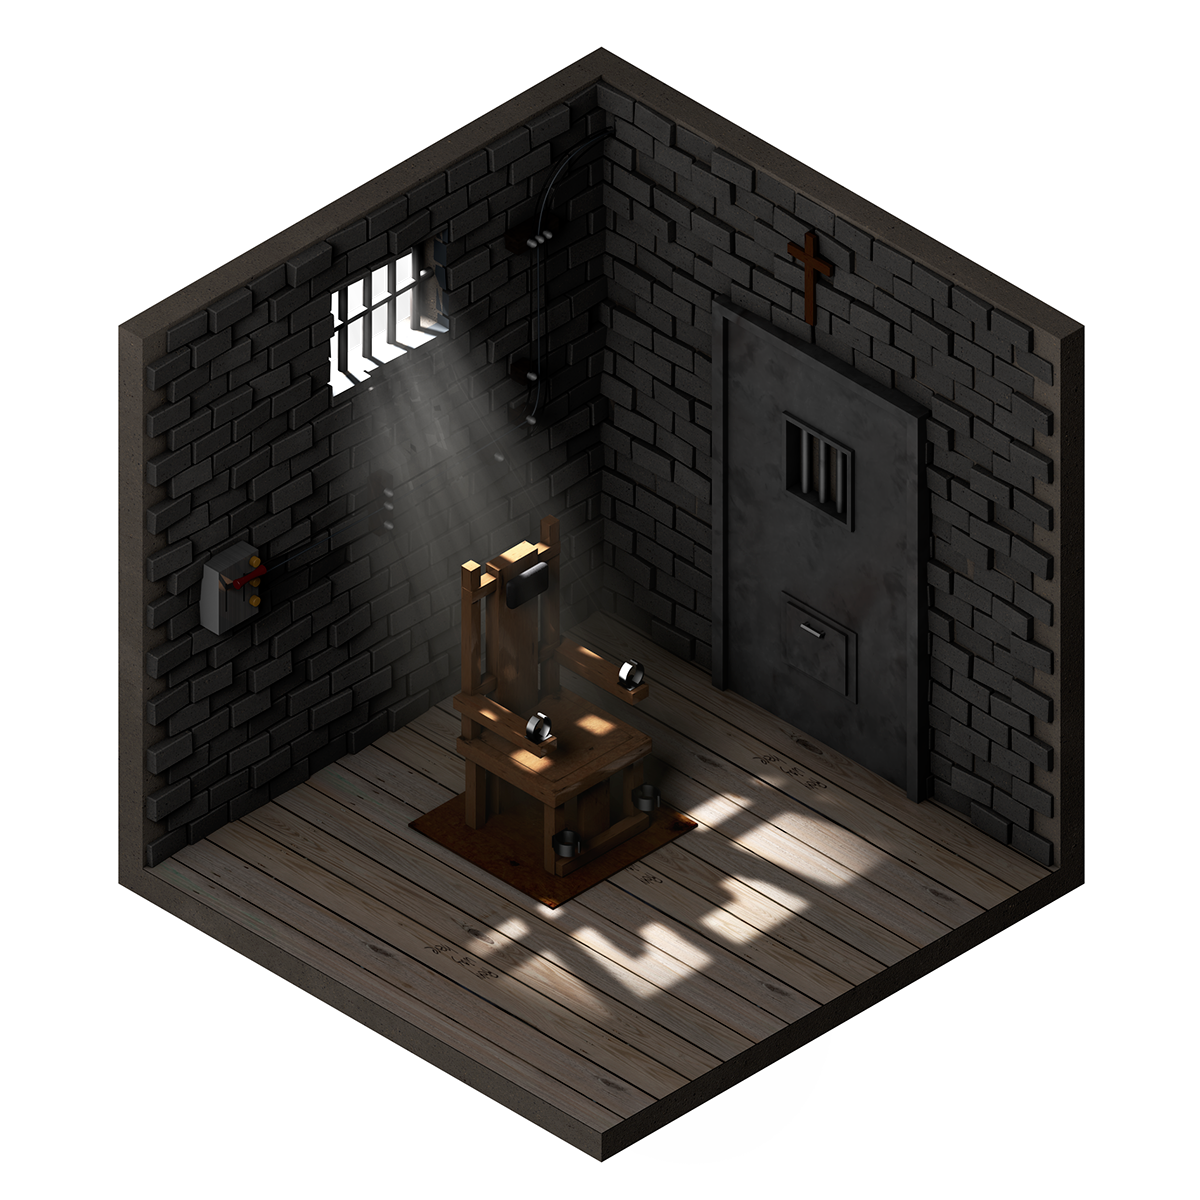 These low poly isometric artworks feature miniature rooms for Unity 3d room design